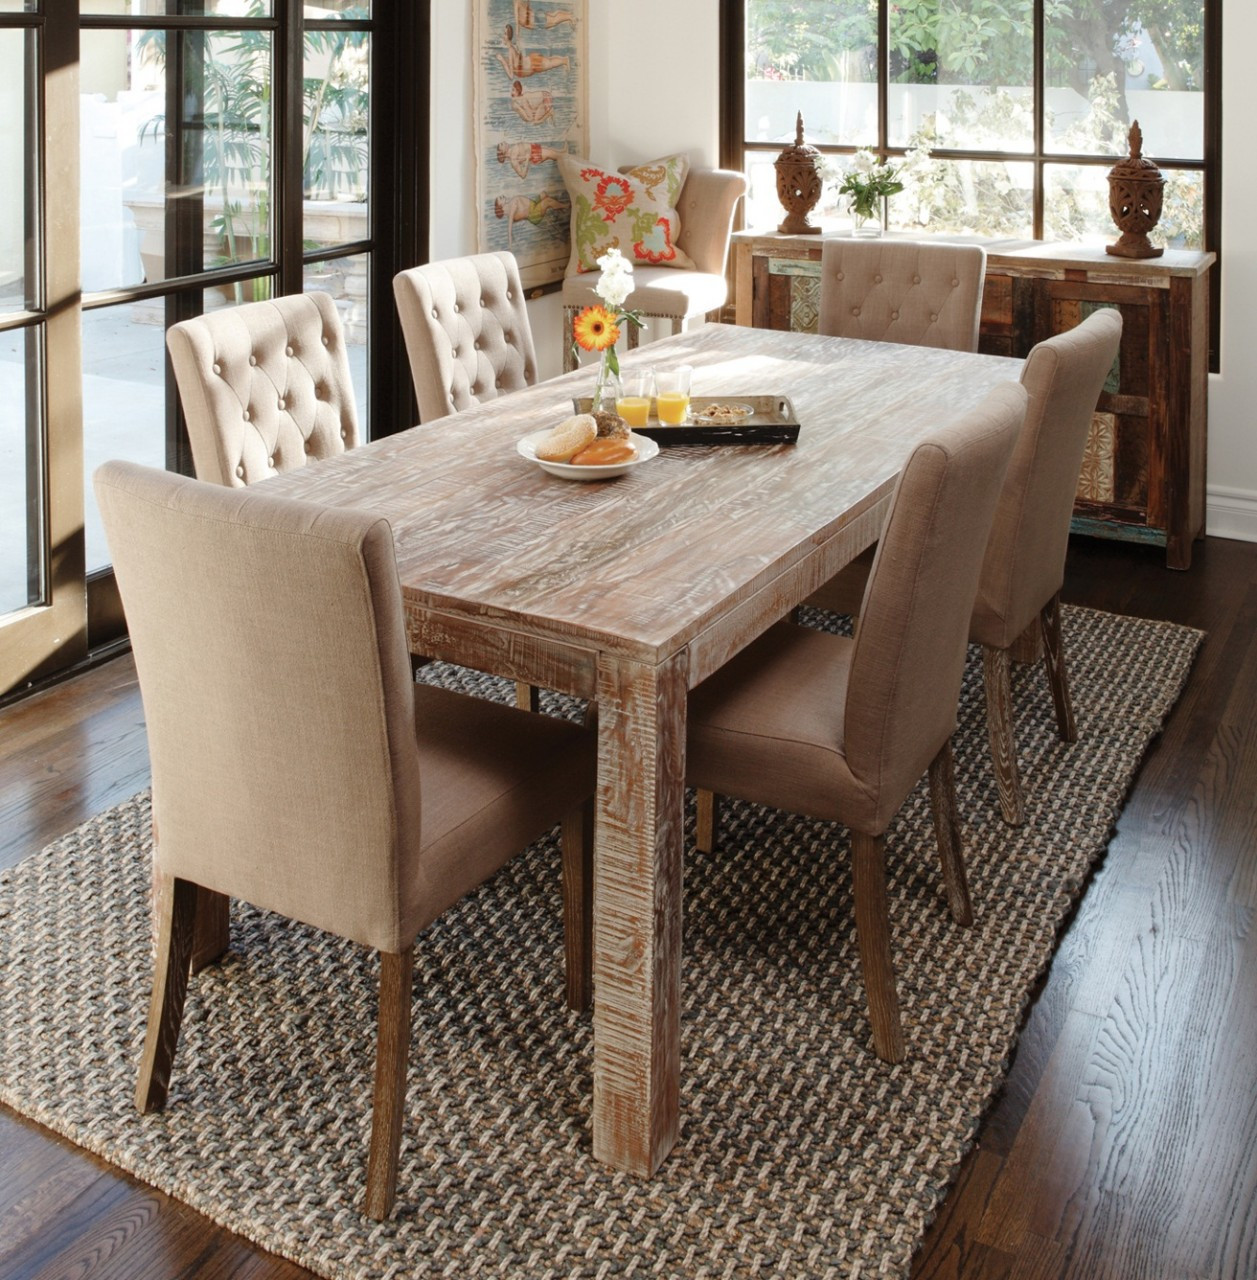 hampton farmhouse dining room table 72"